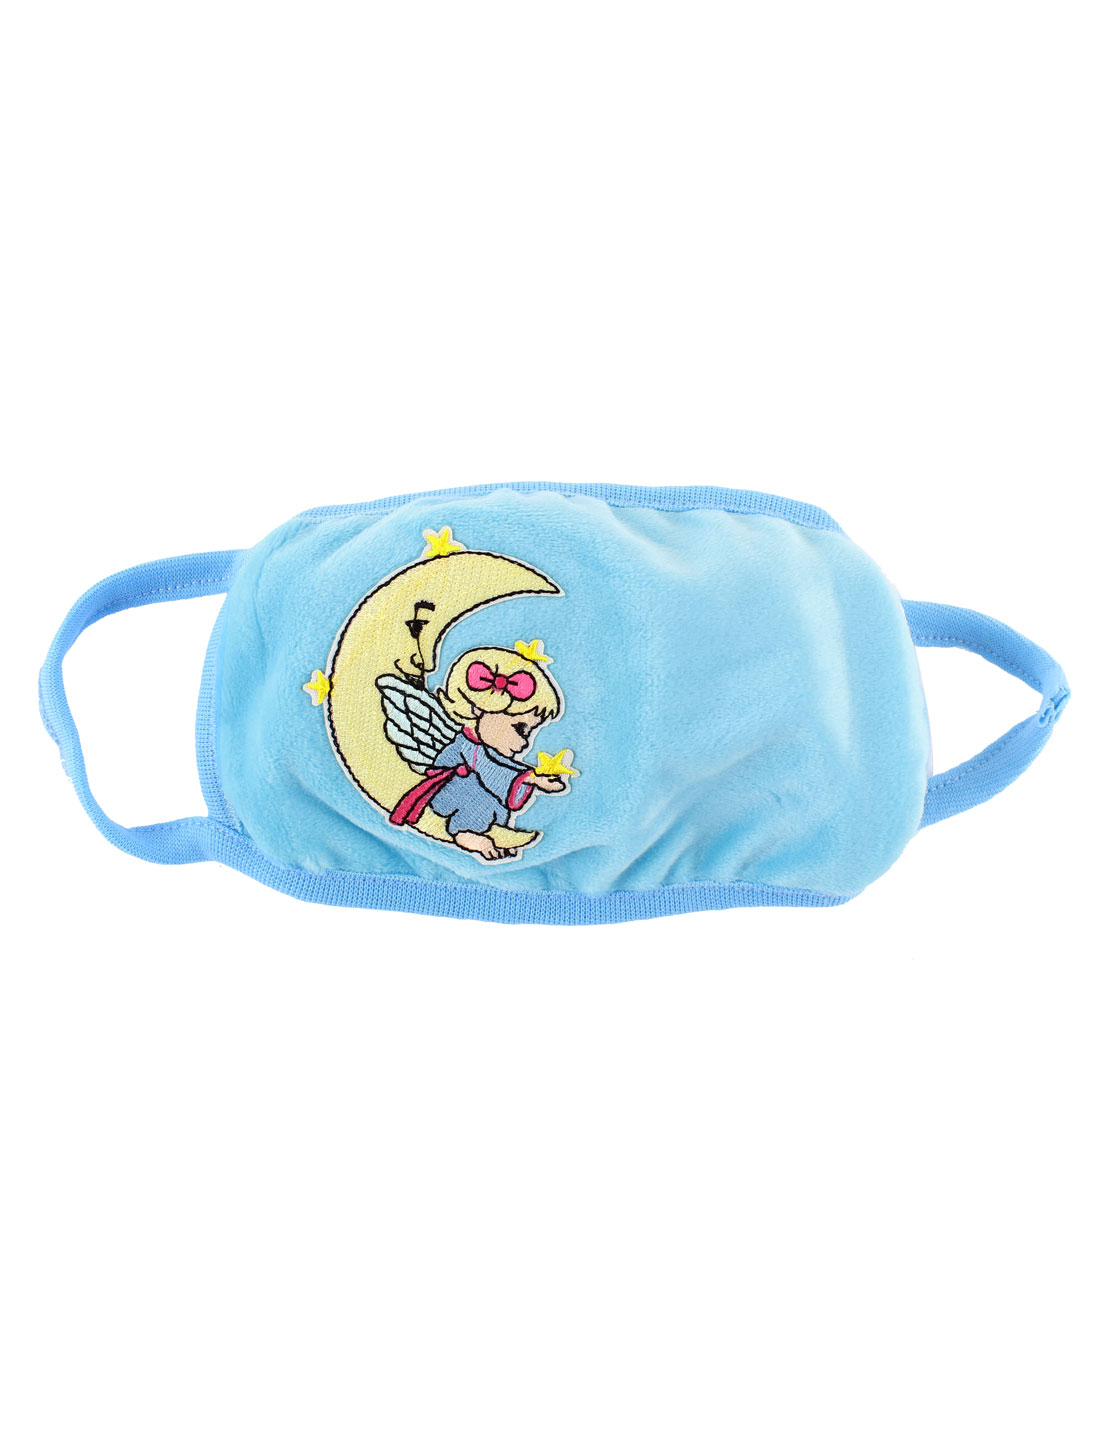 Moon Girl Pattern Stretchy Strap Face Nose Mouth Mask Cover Respirator Blue